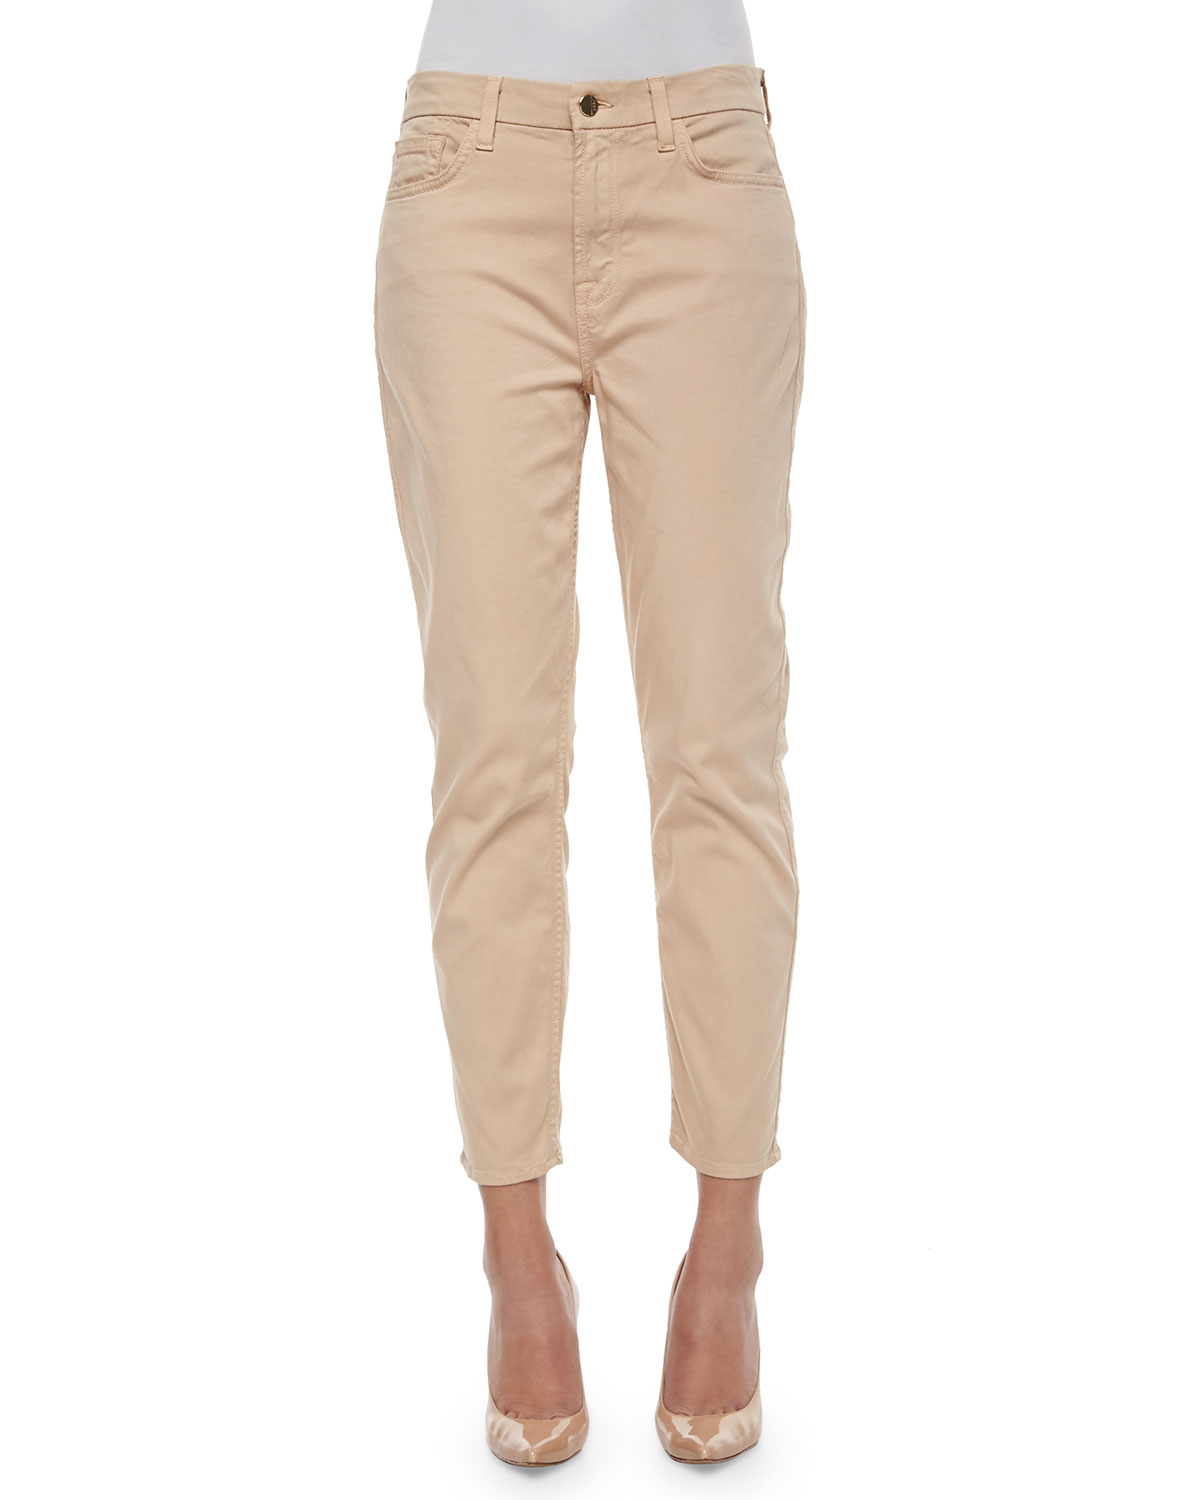 Put together the perfect outfit with our collection of Men's Khakis and Pants in a variety of fits and styles at American Eagle Outfitters. Skinny Pants. New Online Only AE Ne(X)t Level Skinny Khaki Pant Regular Price $ Sale Price $ Launch product quickview. removed! New Online Only AE Ne(X)t Level Skinny Khaki Pant.